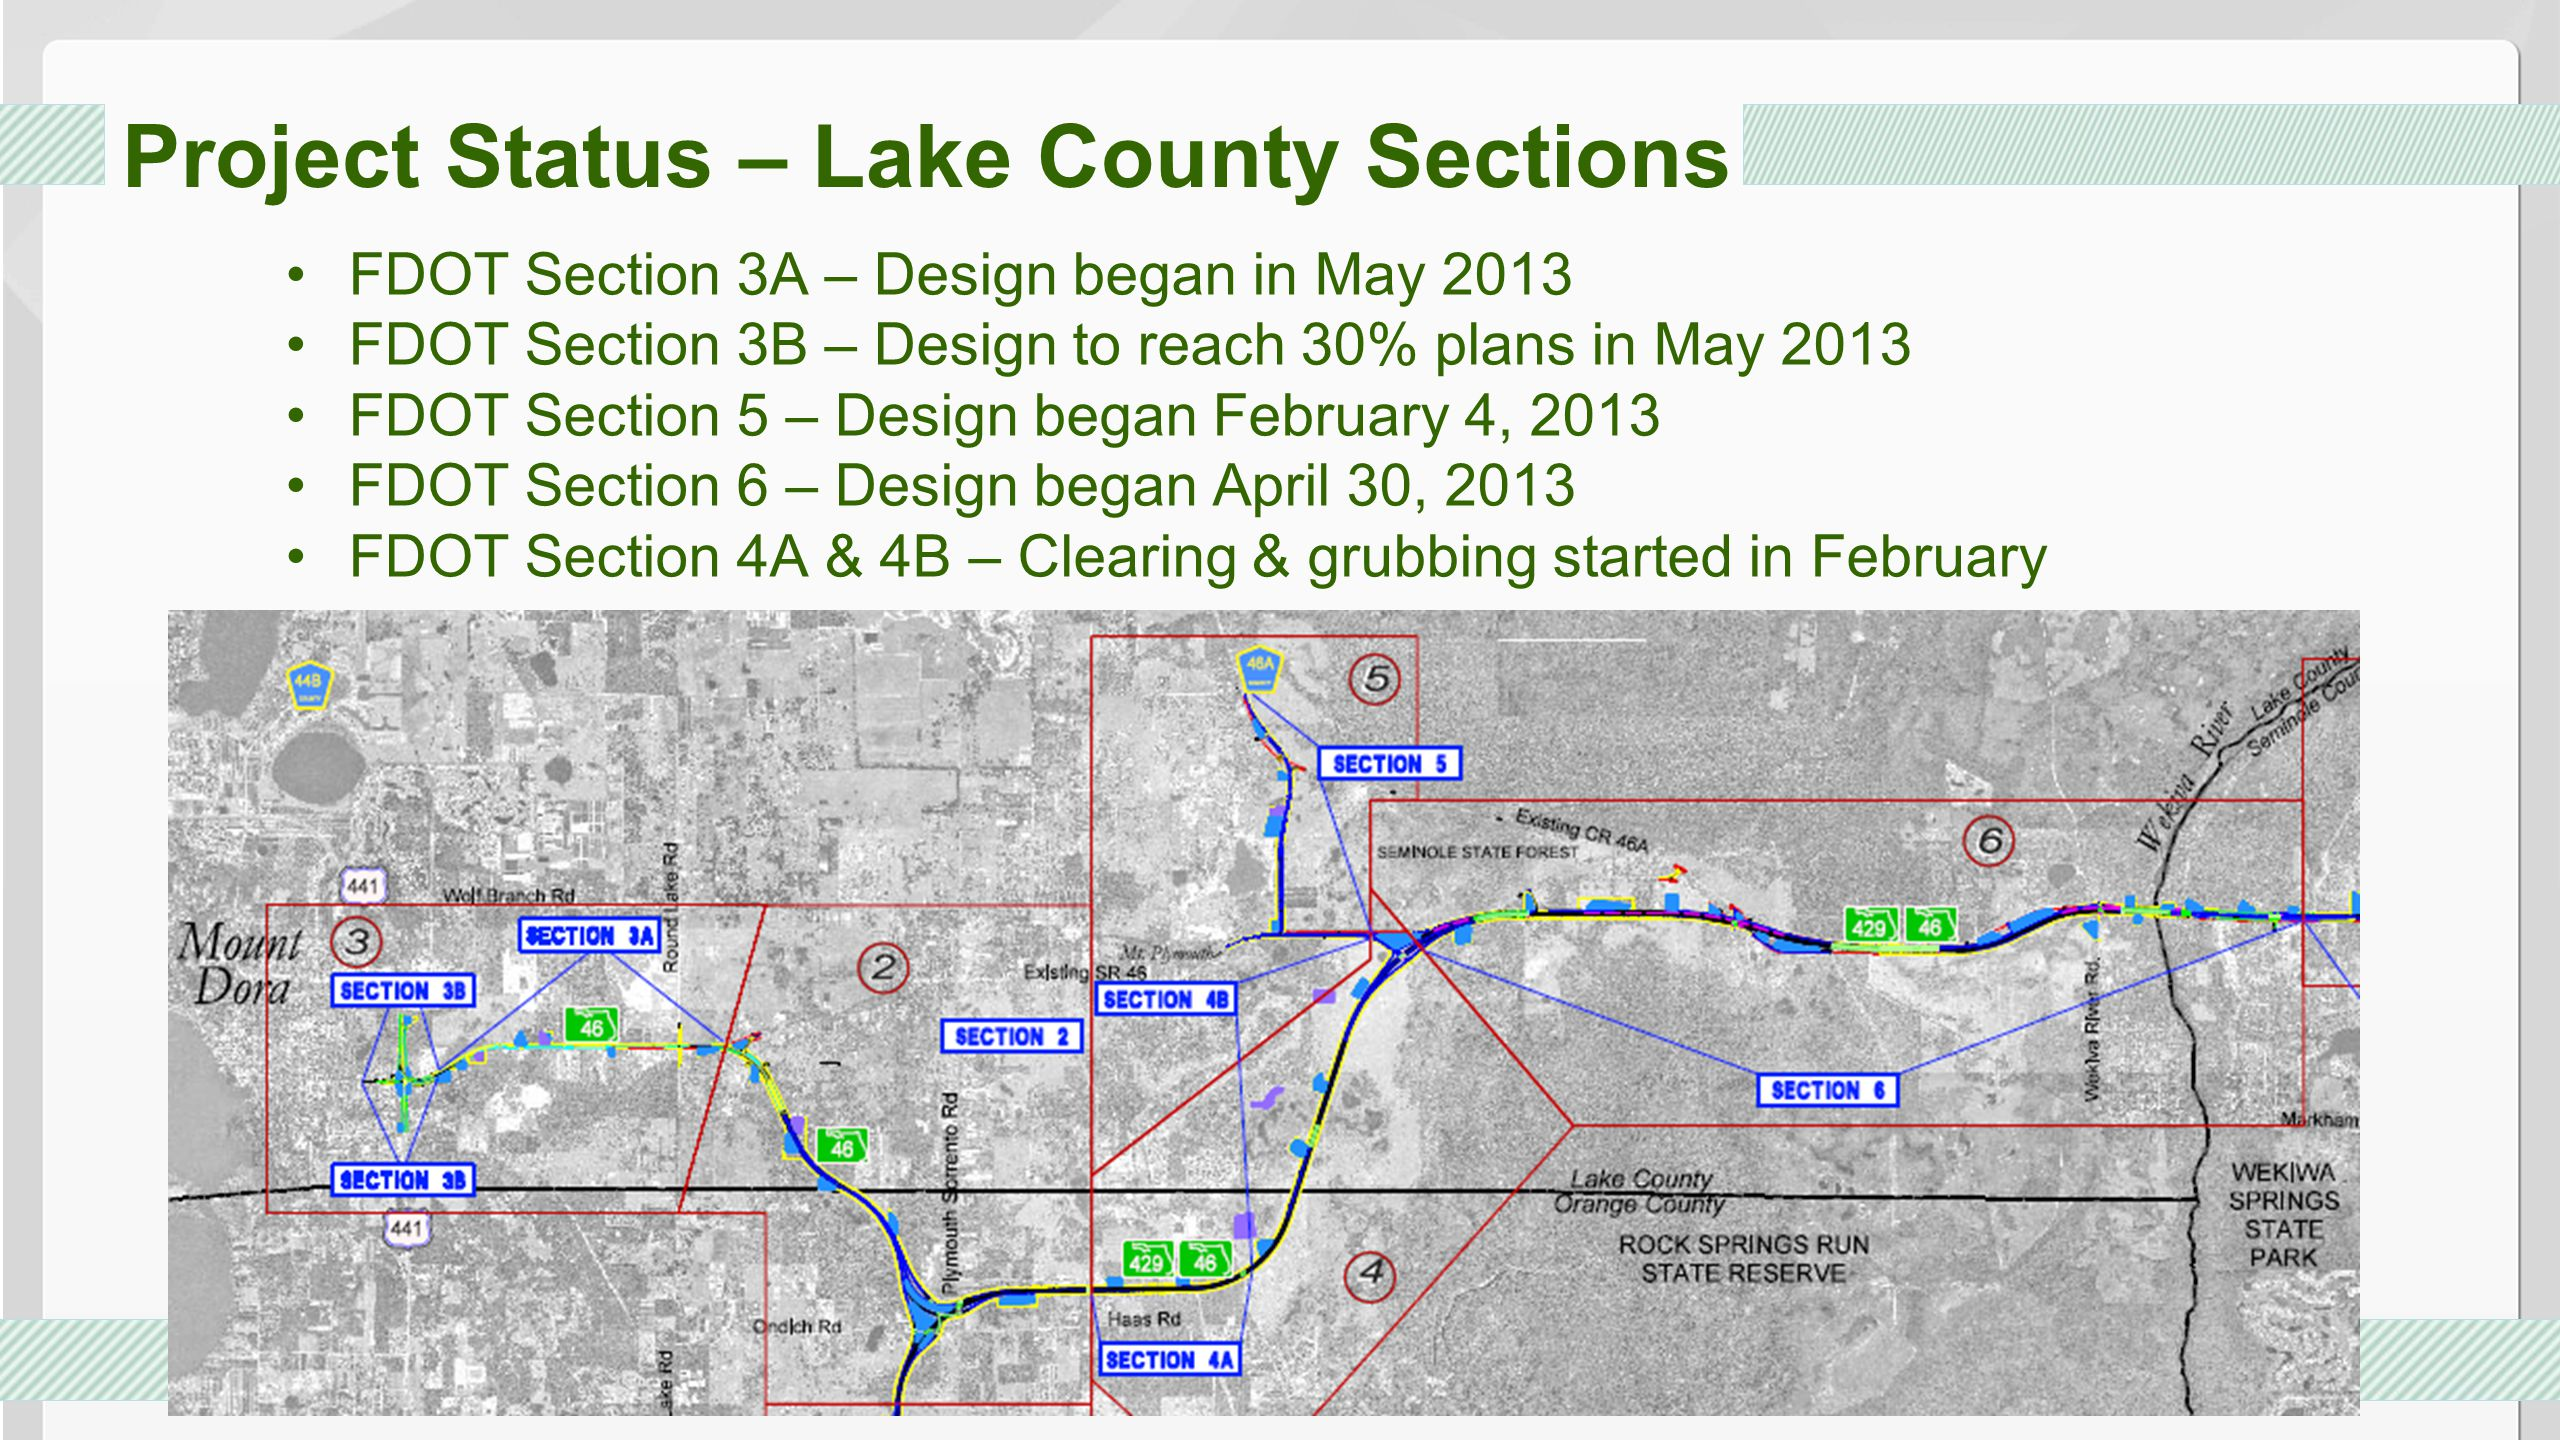 Project Status – Lake County Sections